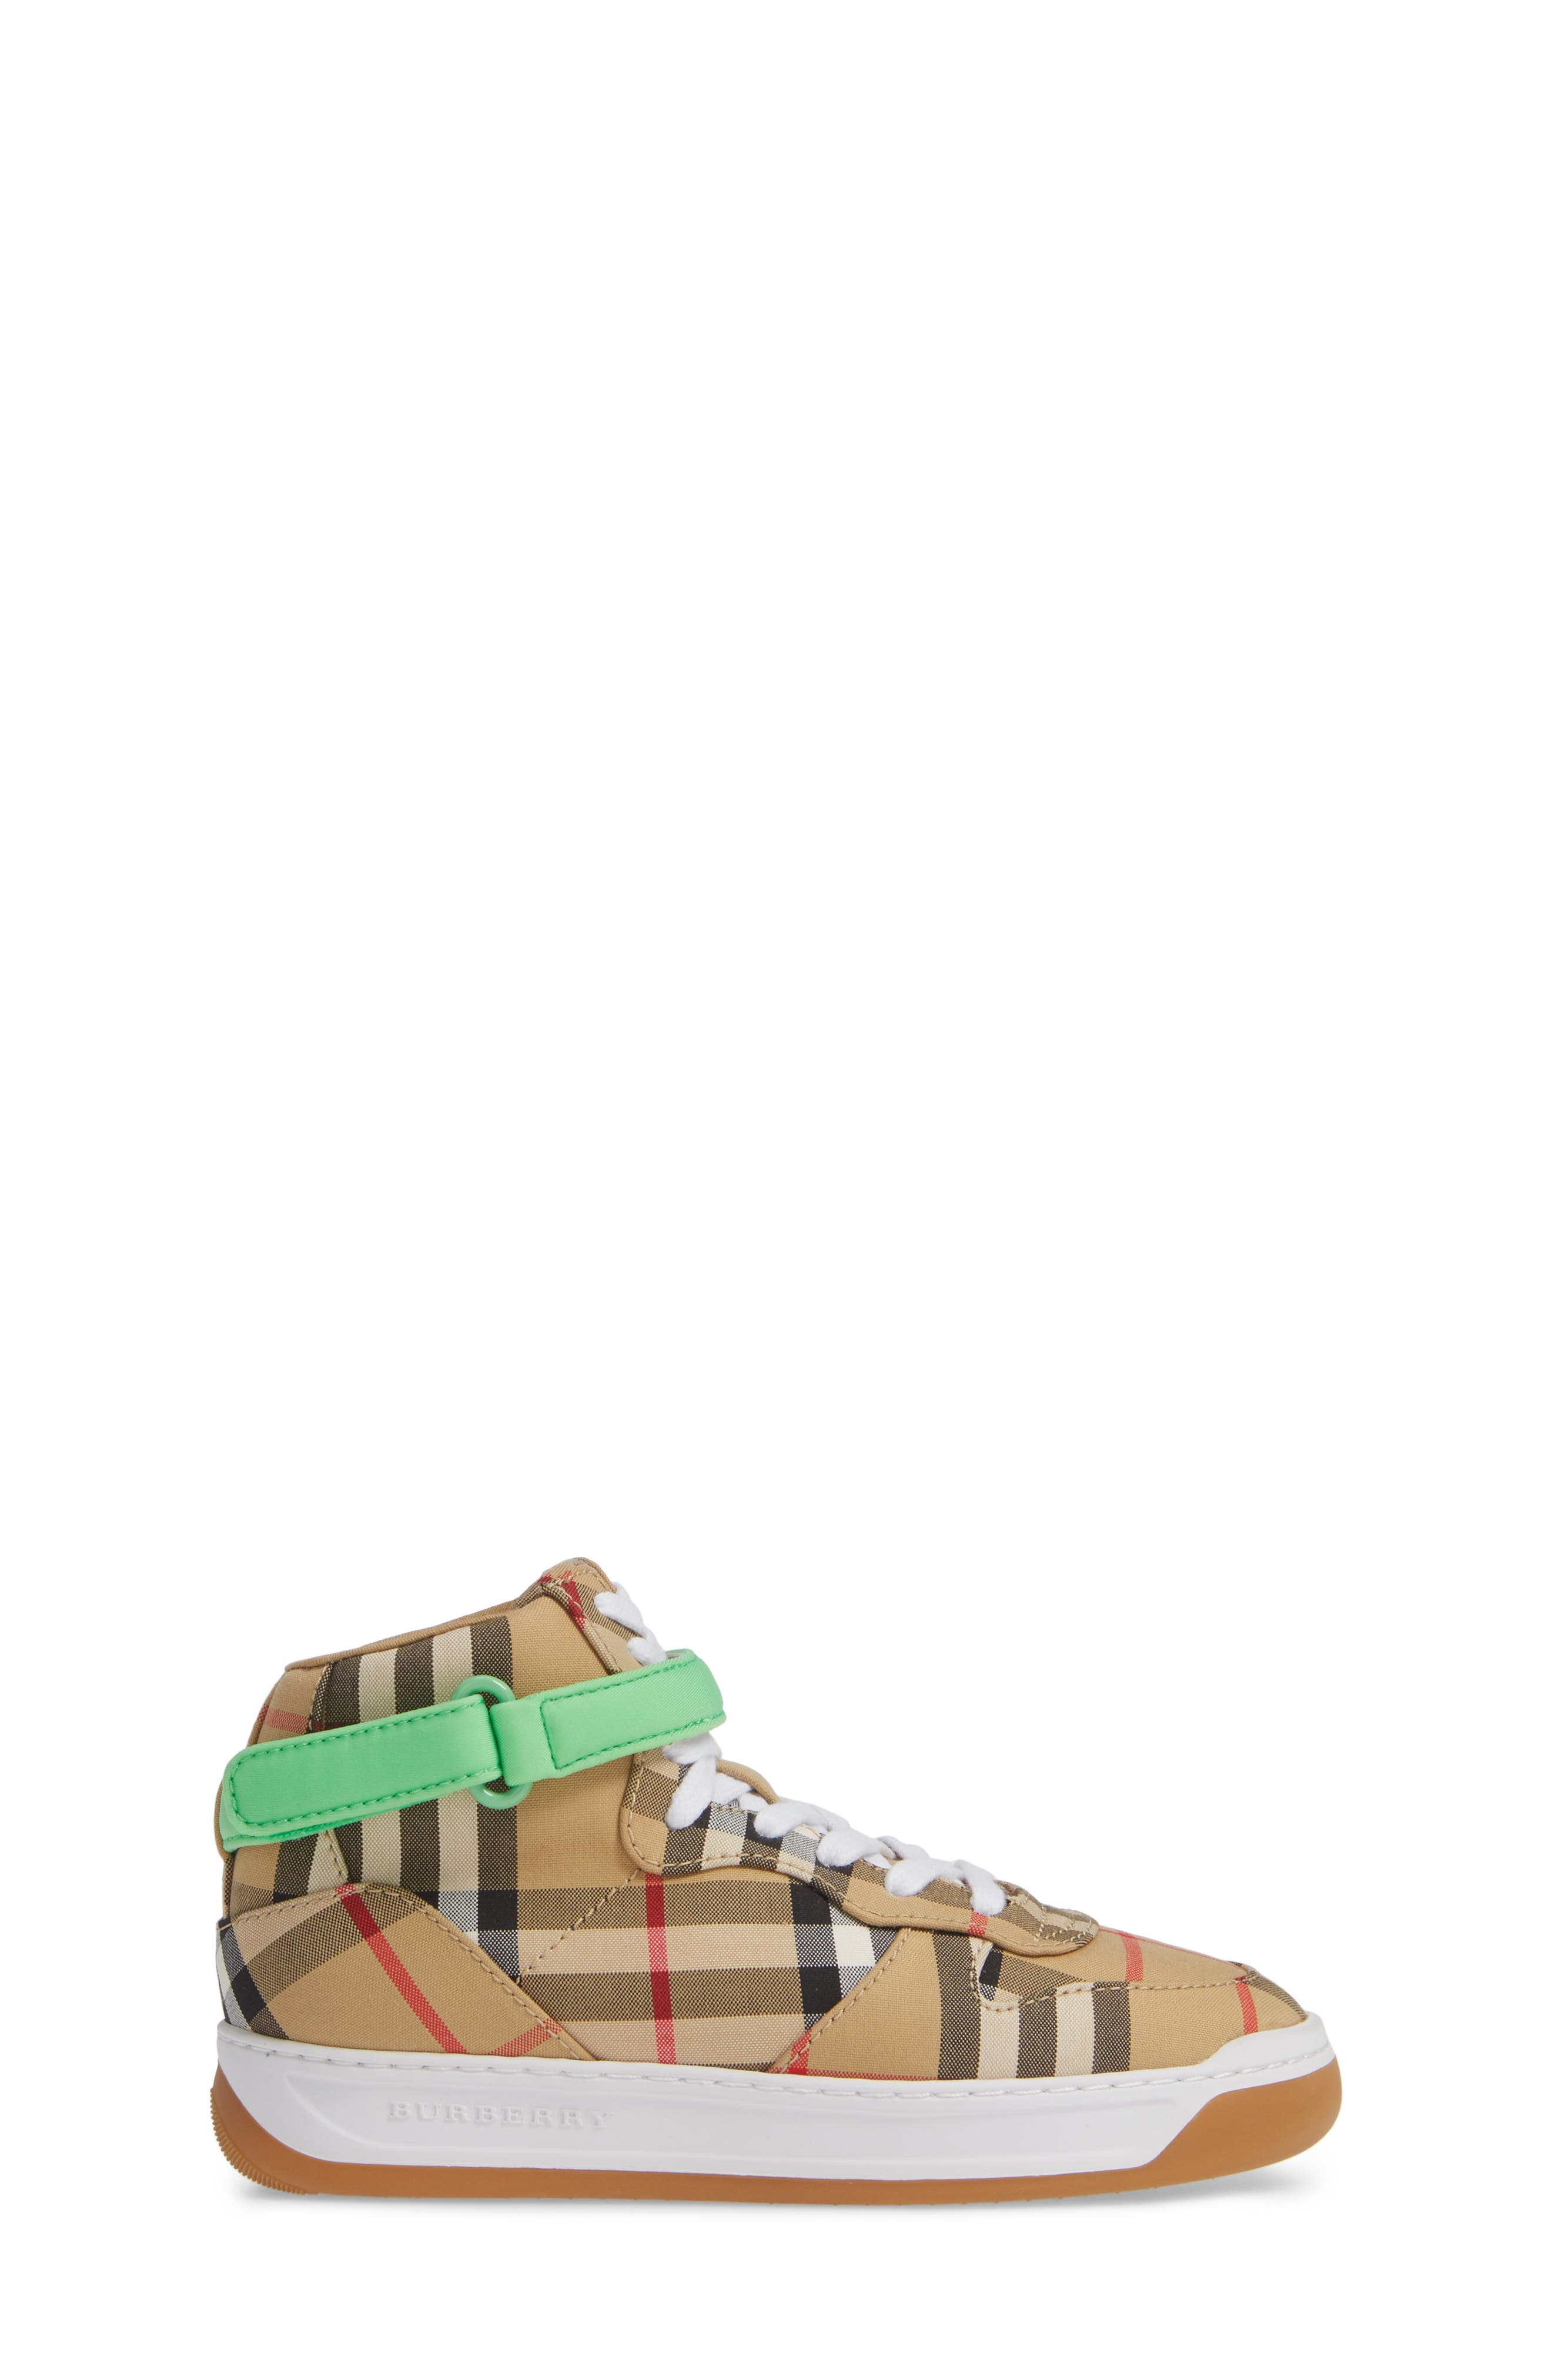 BURBERRY, Groves High Top Sneaker, Alternate thumbnail 3, color, NEON GREEN